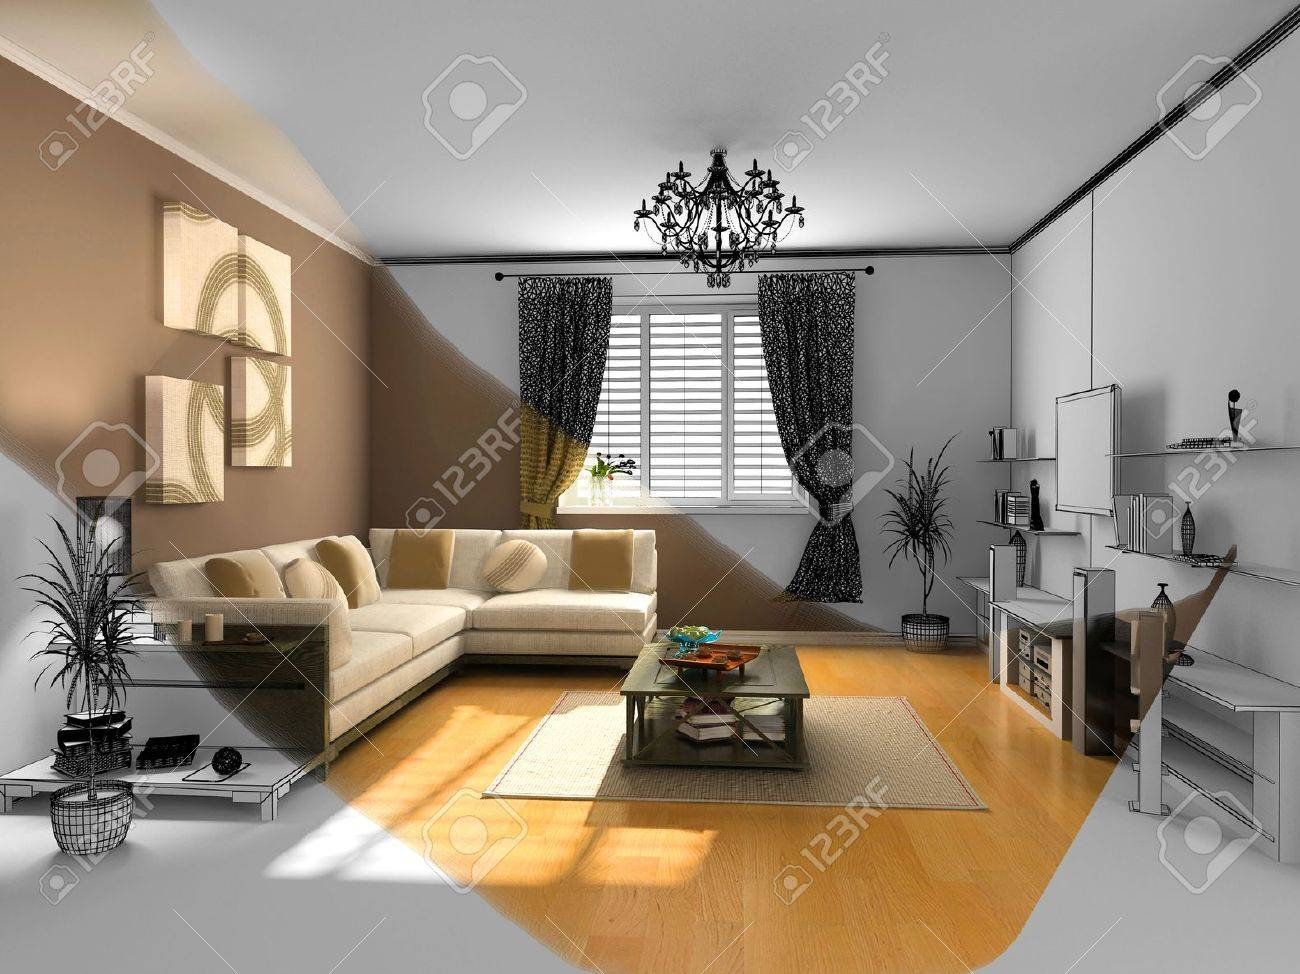 The Modern Interior Sketch Wireframe Rendering Stock Photo